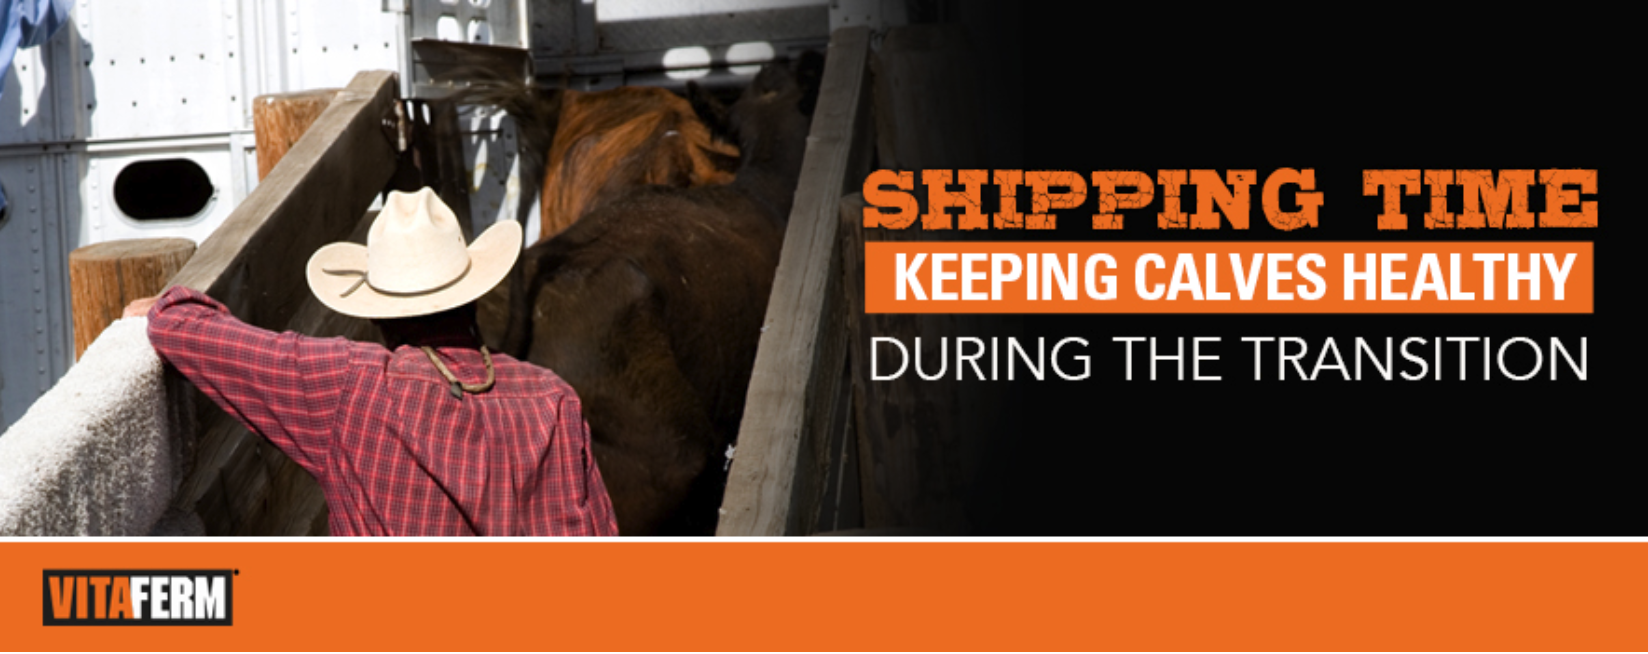 It's Shipping Time: Keep Calves Healthy During the Transition